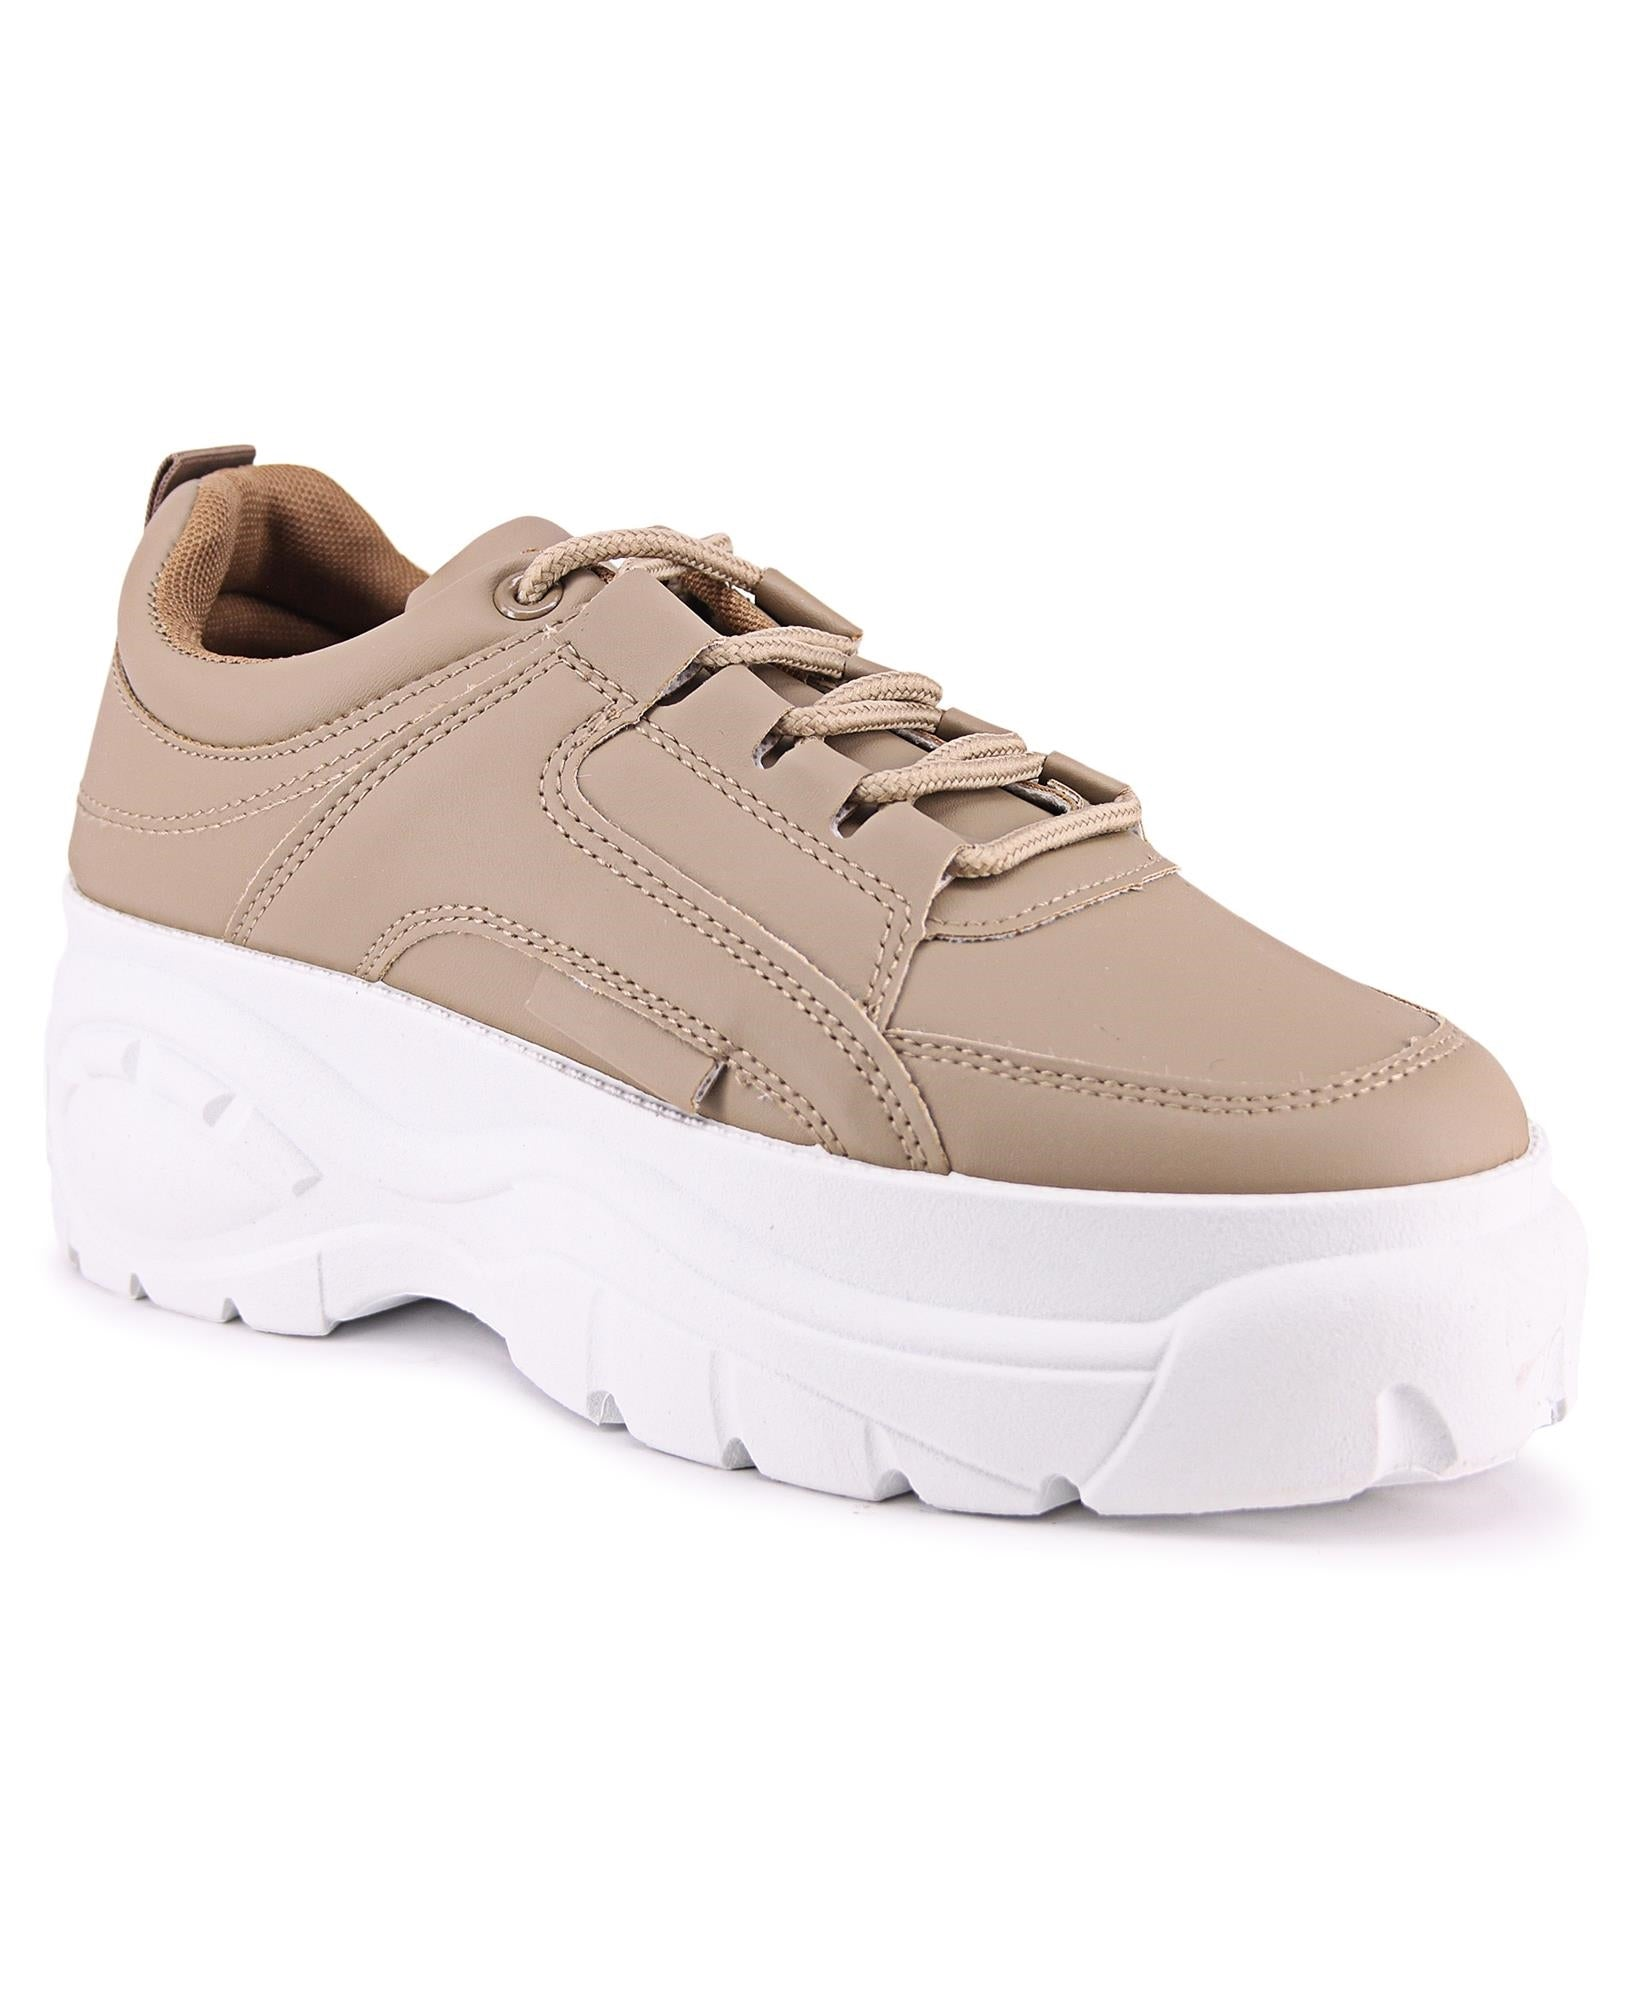 Ladies' Raw Sneakers - Taupe